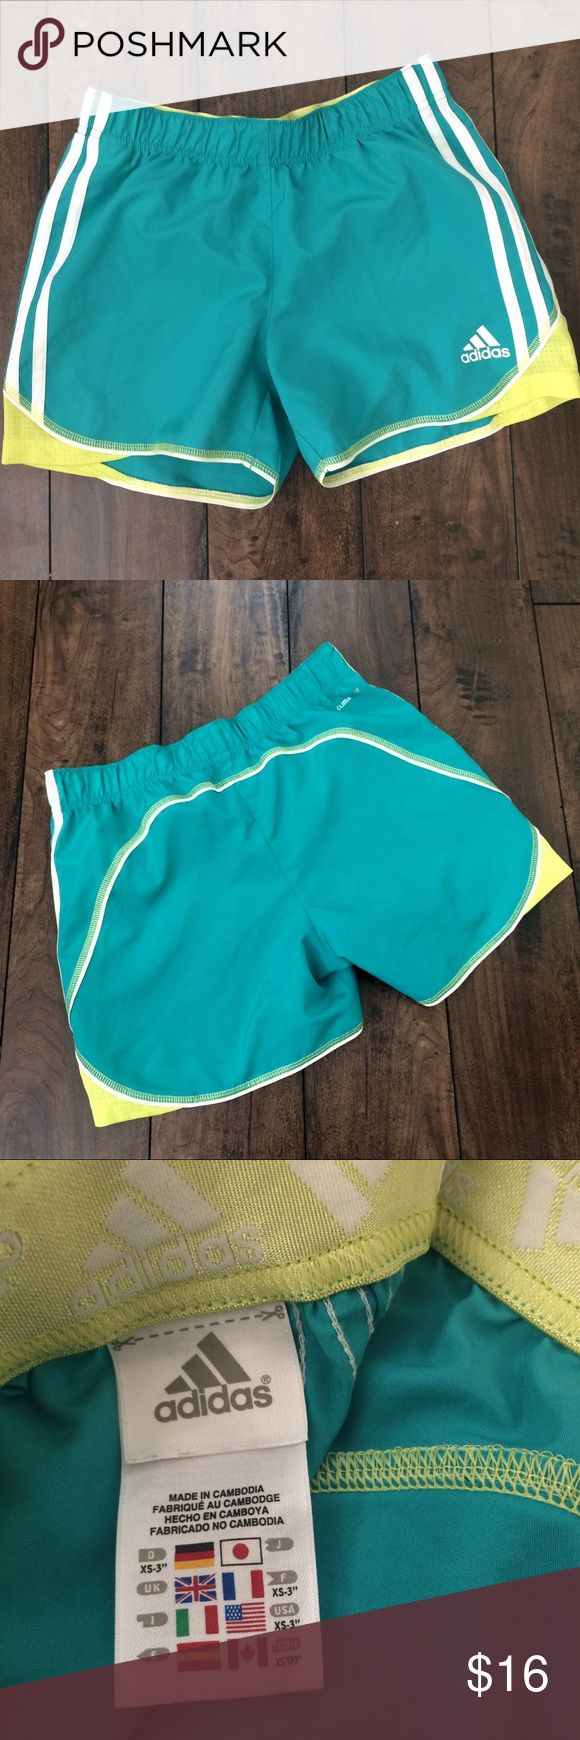 "Adidas Climalite Teal Shorts Lightweight and beautiful color combo of teal/white/chartreuse shorts make these perfect for a quick workout. No pockets on these shorts and they are made from 100% polyester. Measurements laying flat are approximately 13"" waistband and 12"" length laying flat. Adidas Shorts"